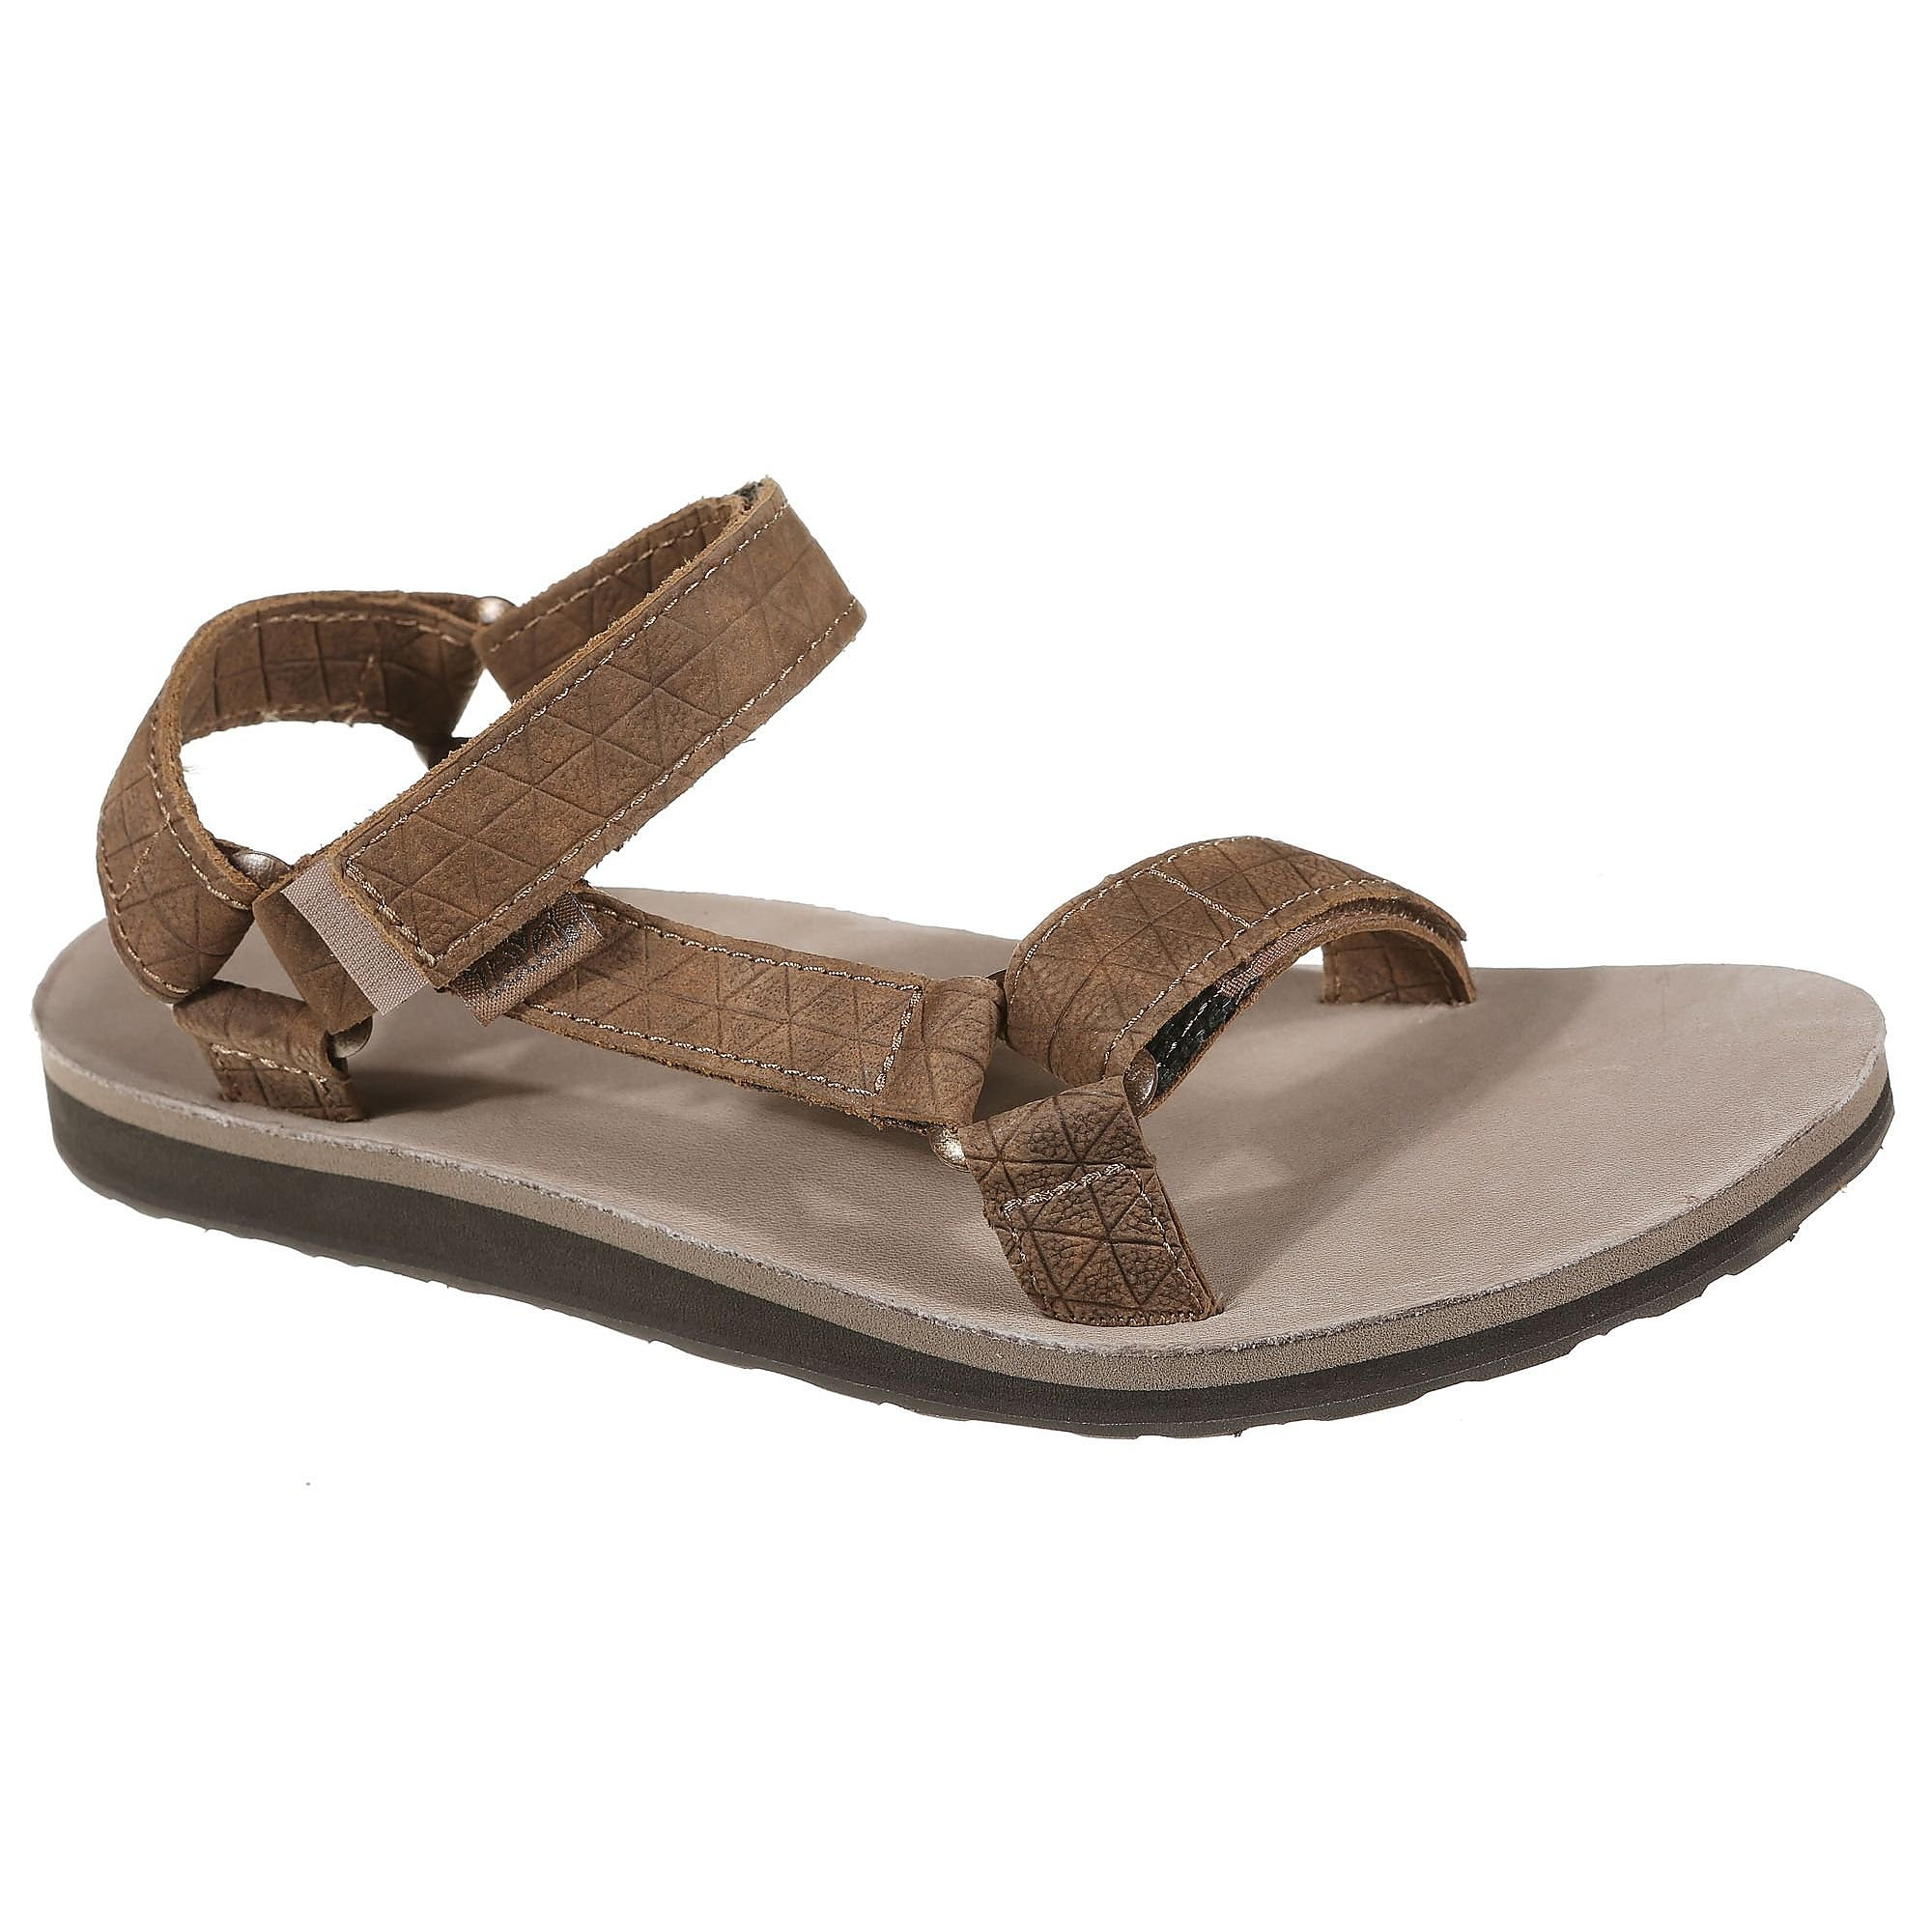 TEVA ORIGINAL UNIVERSAL DIAMON